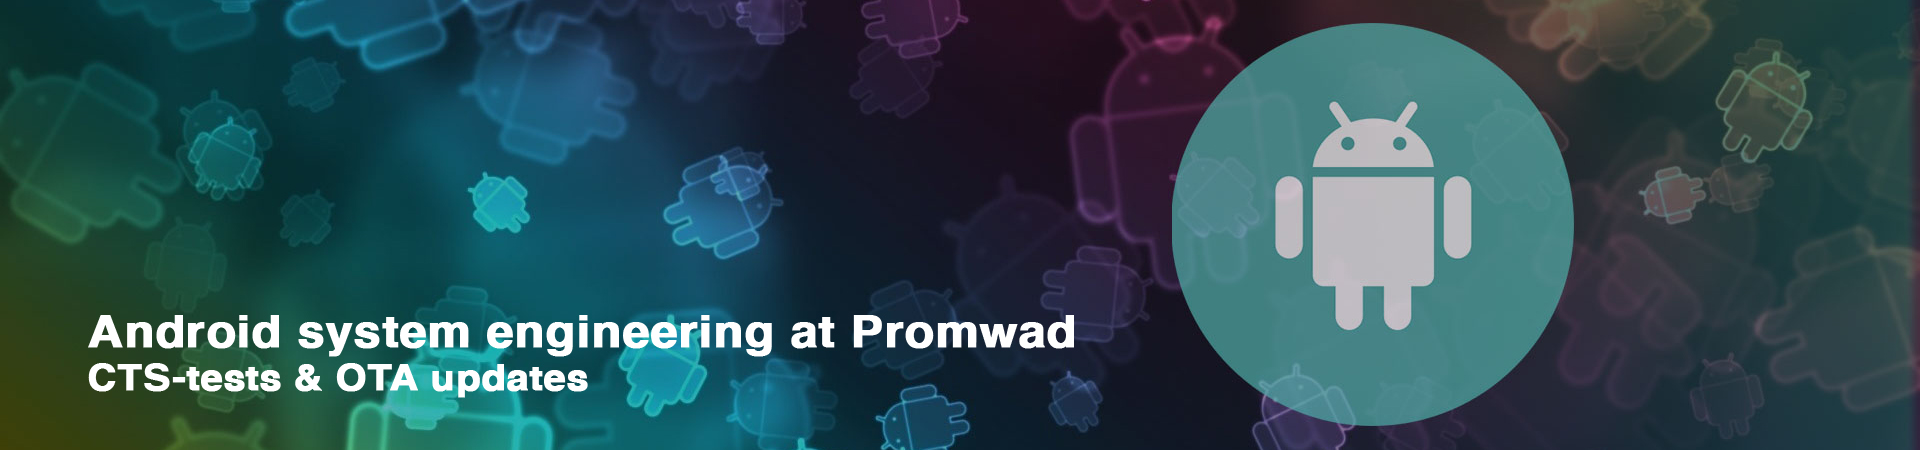 Android system engineering at Promwad